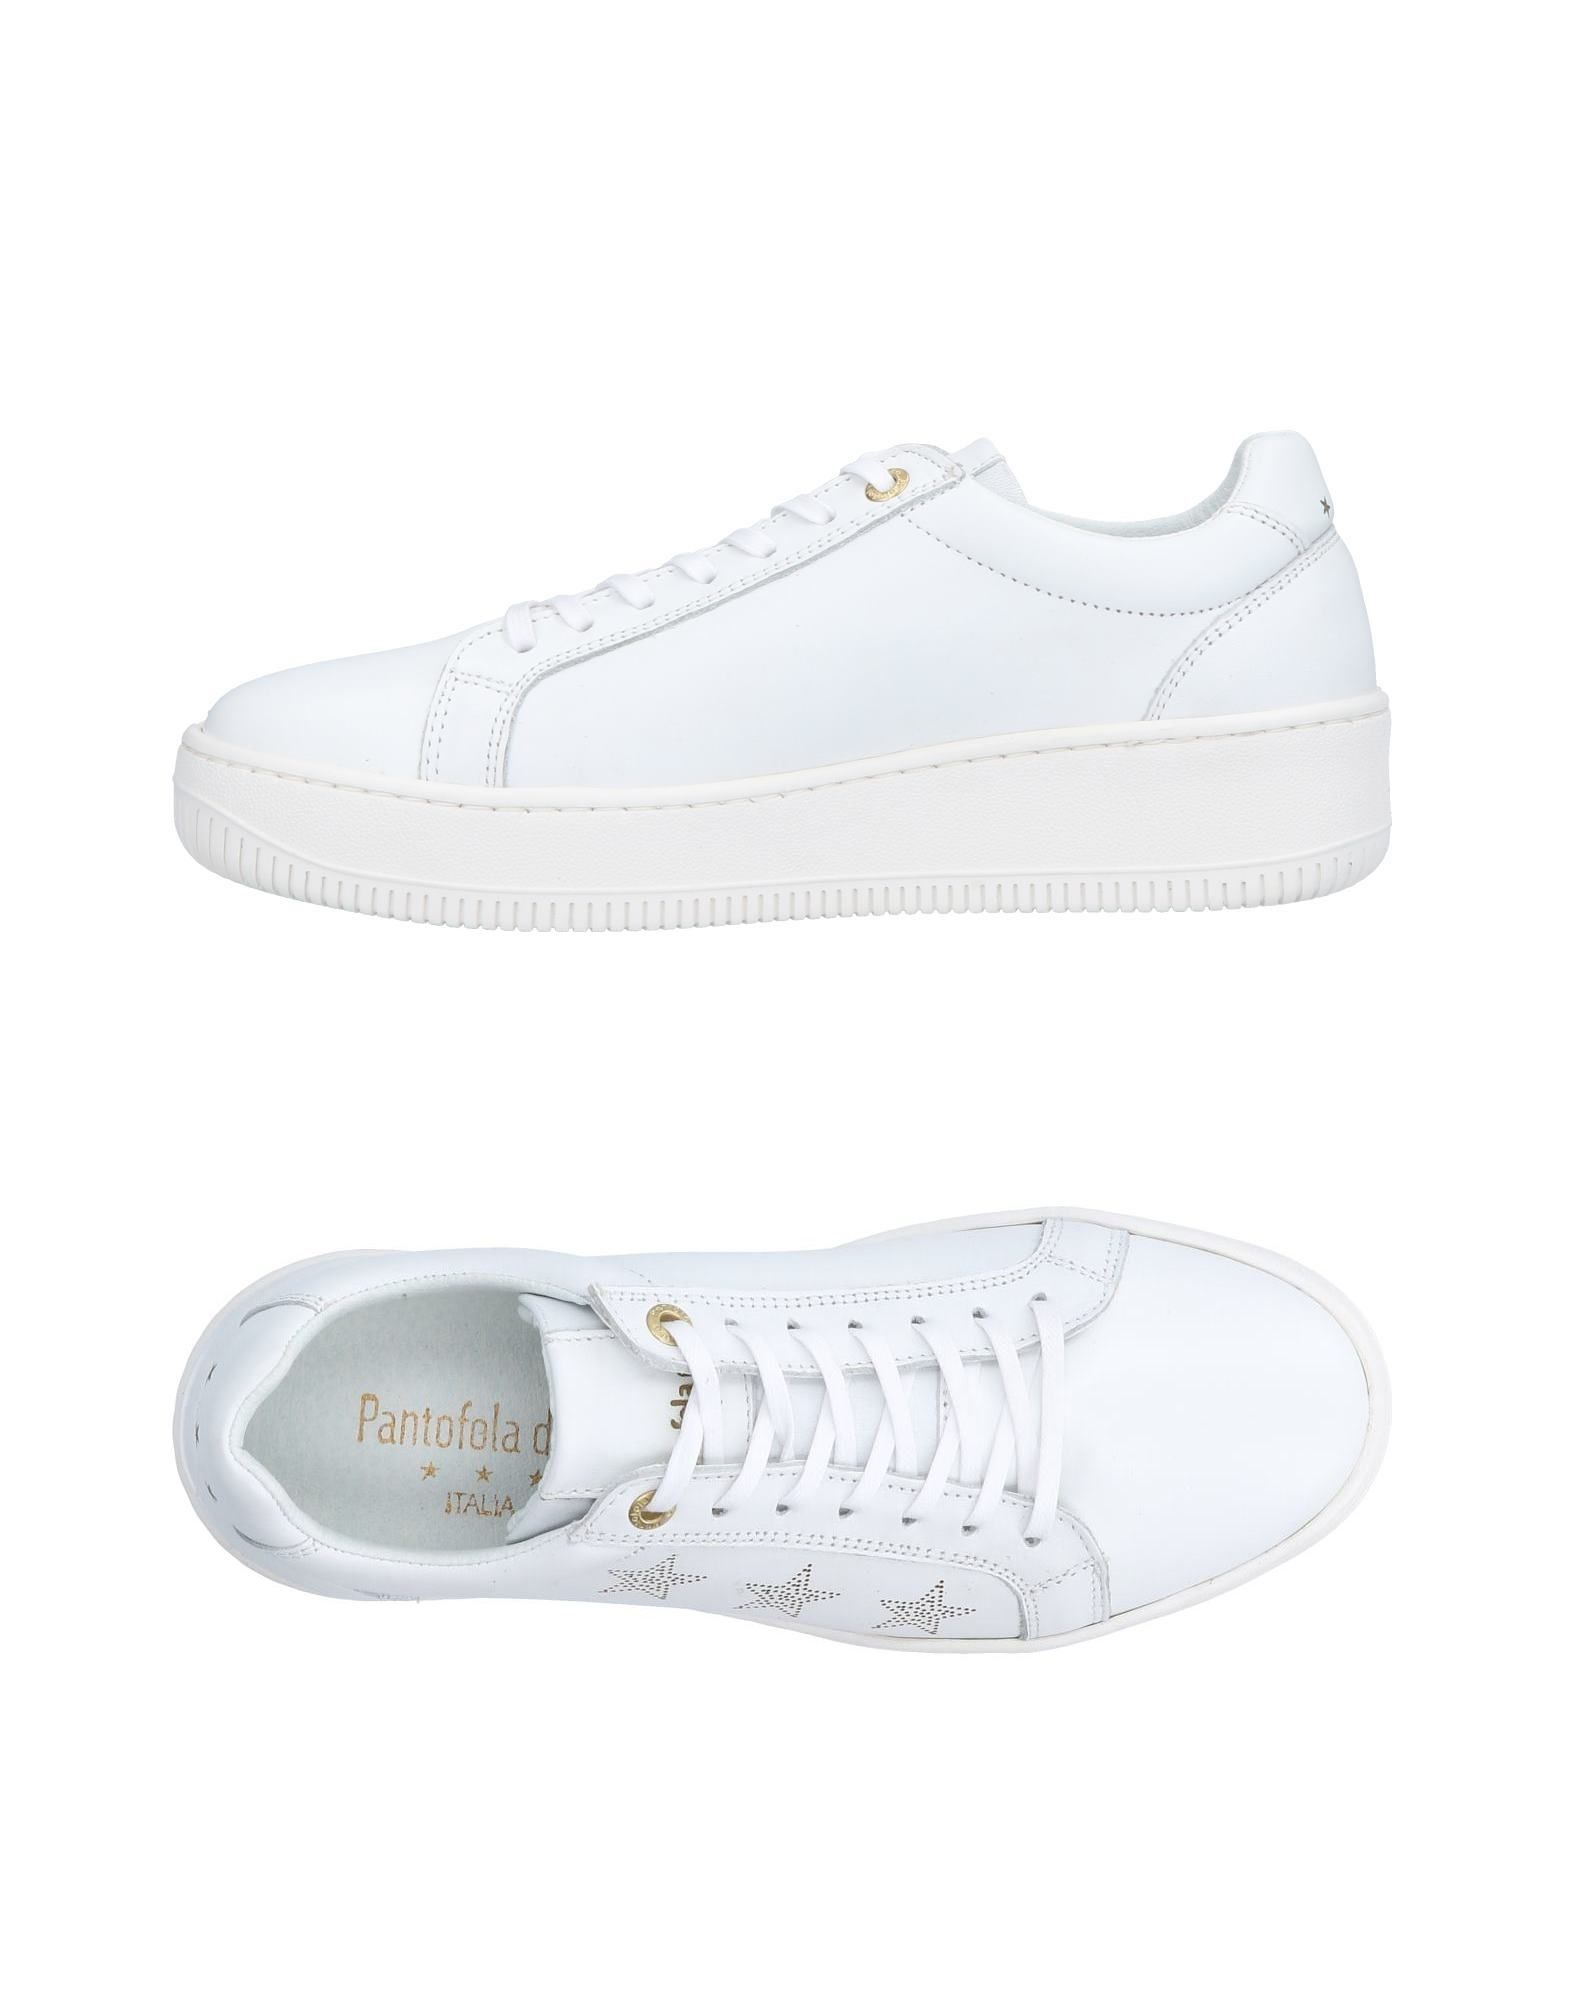 Sneakers Pantofola D'oro Donna - 11456401JU